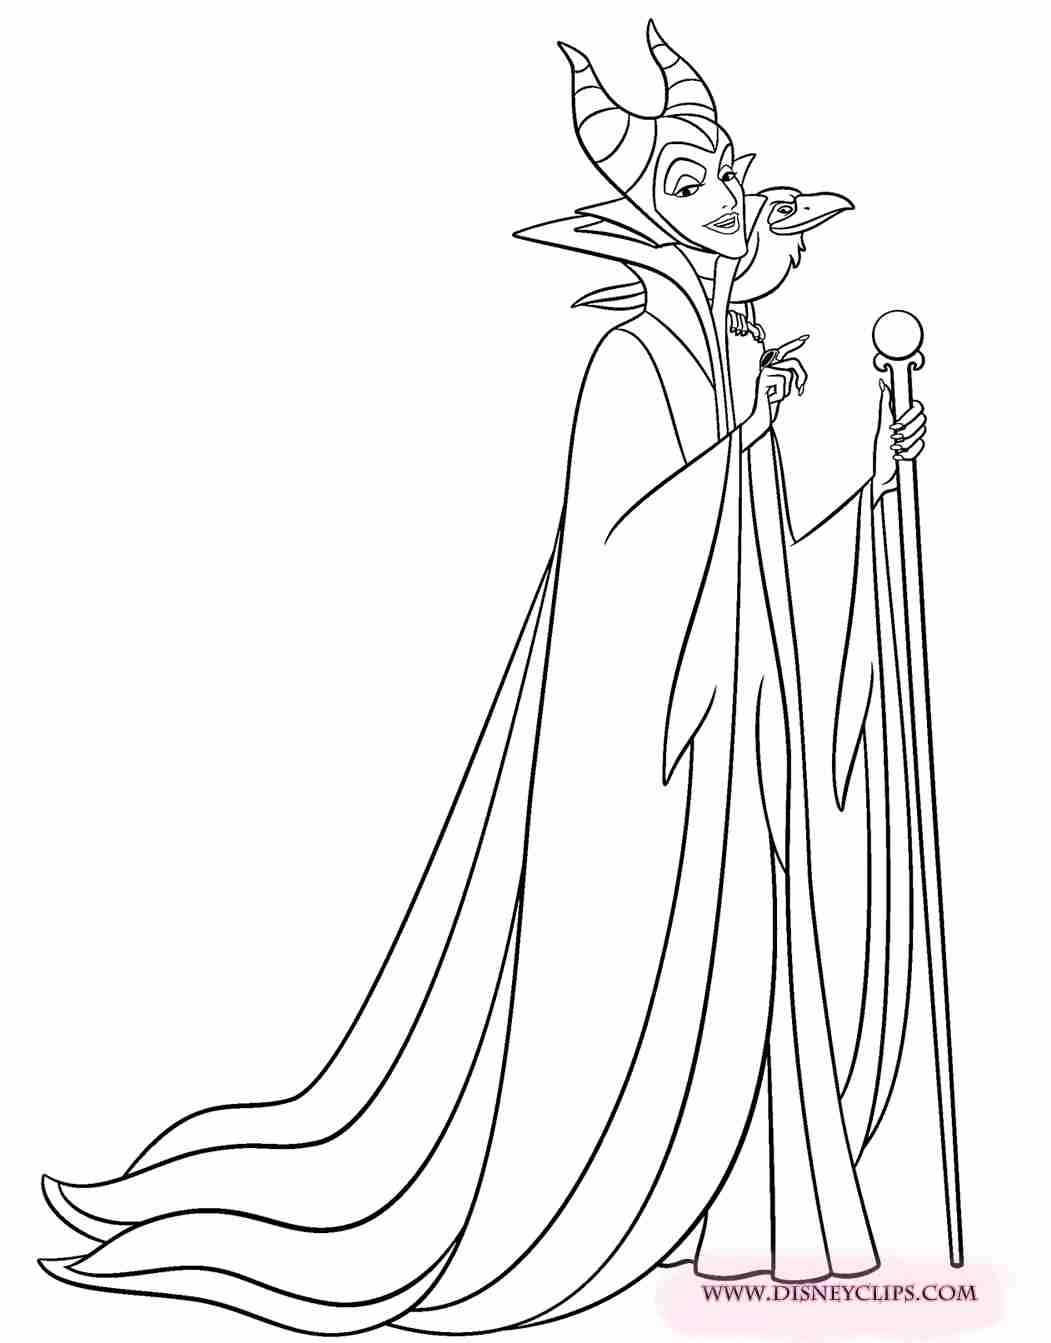 Maleficent Coloring Page at GetDrawings com | Free for